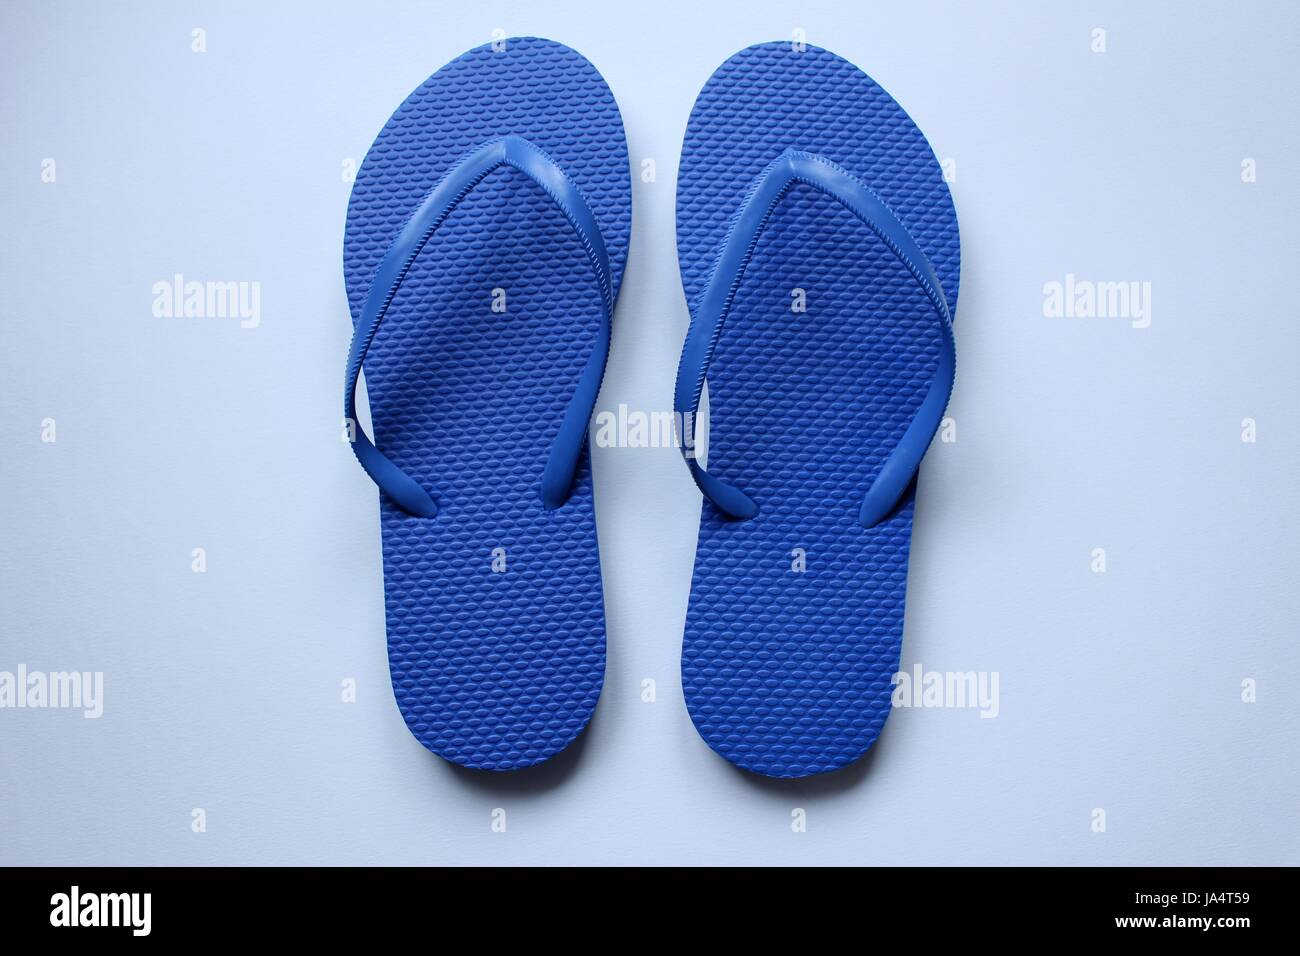 Pairs of beach shoes tong in colors on white background - Stock Image